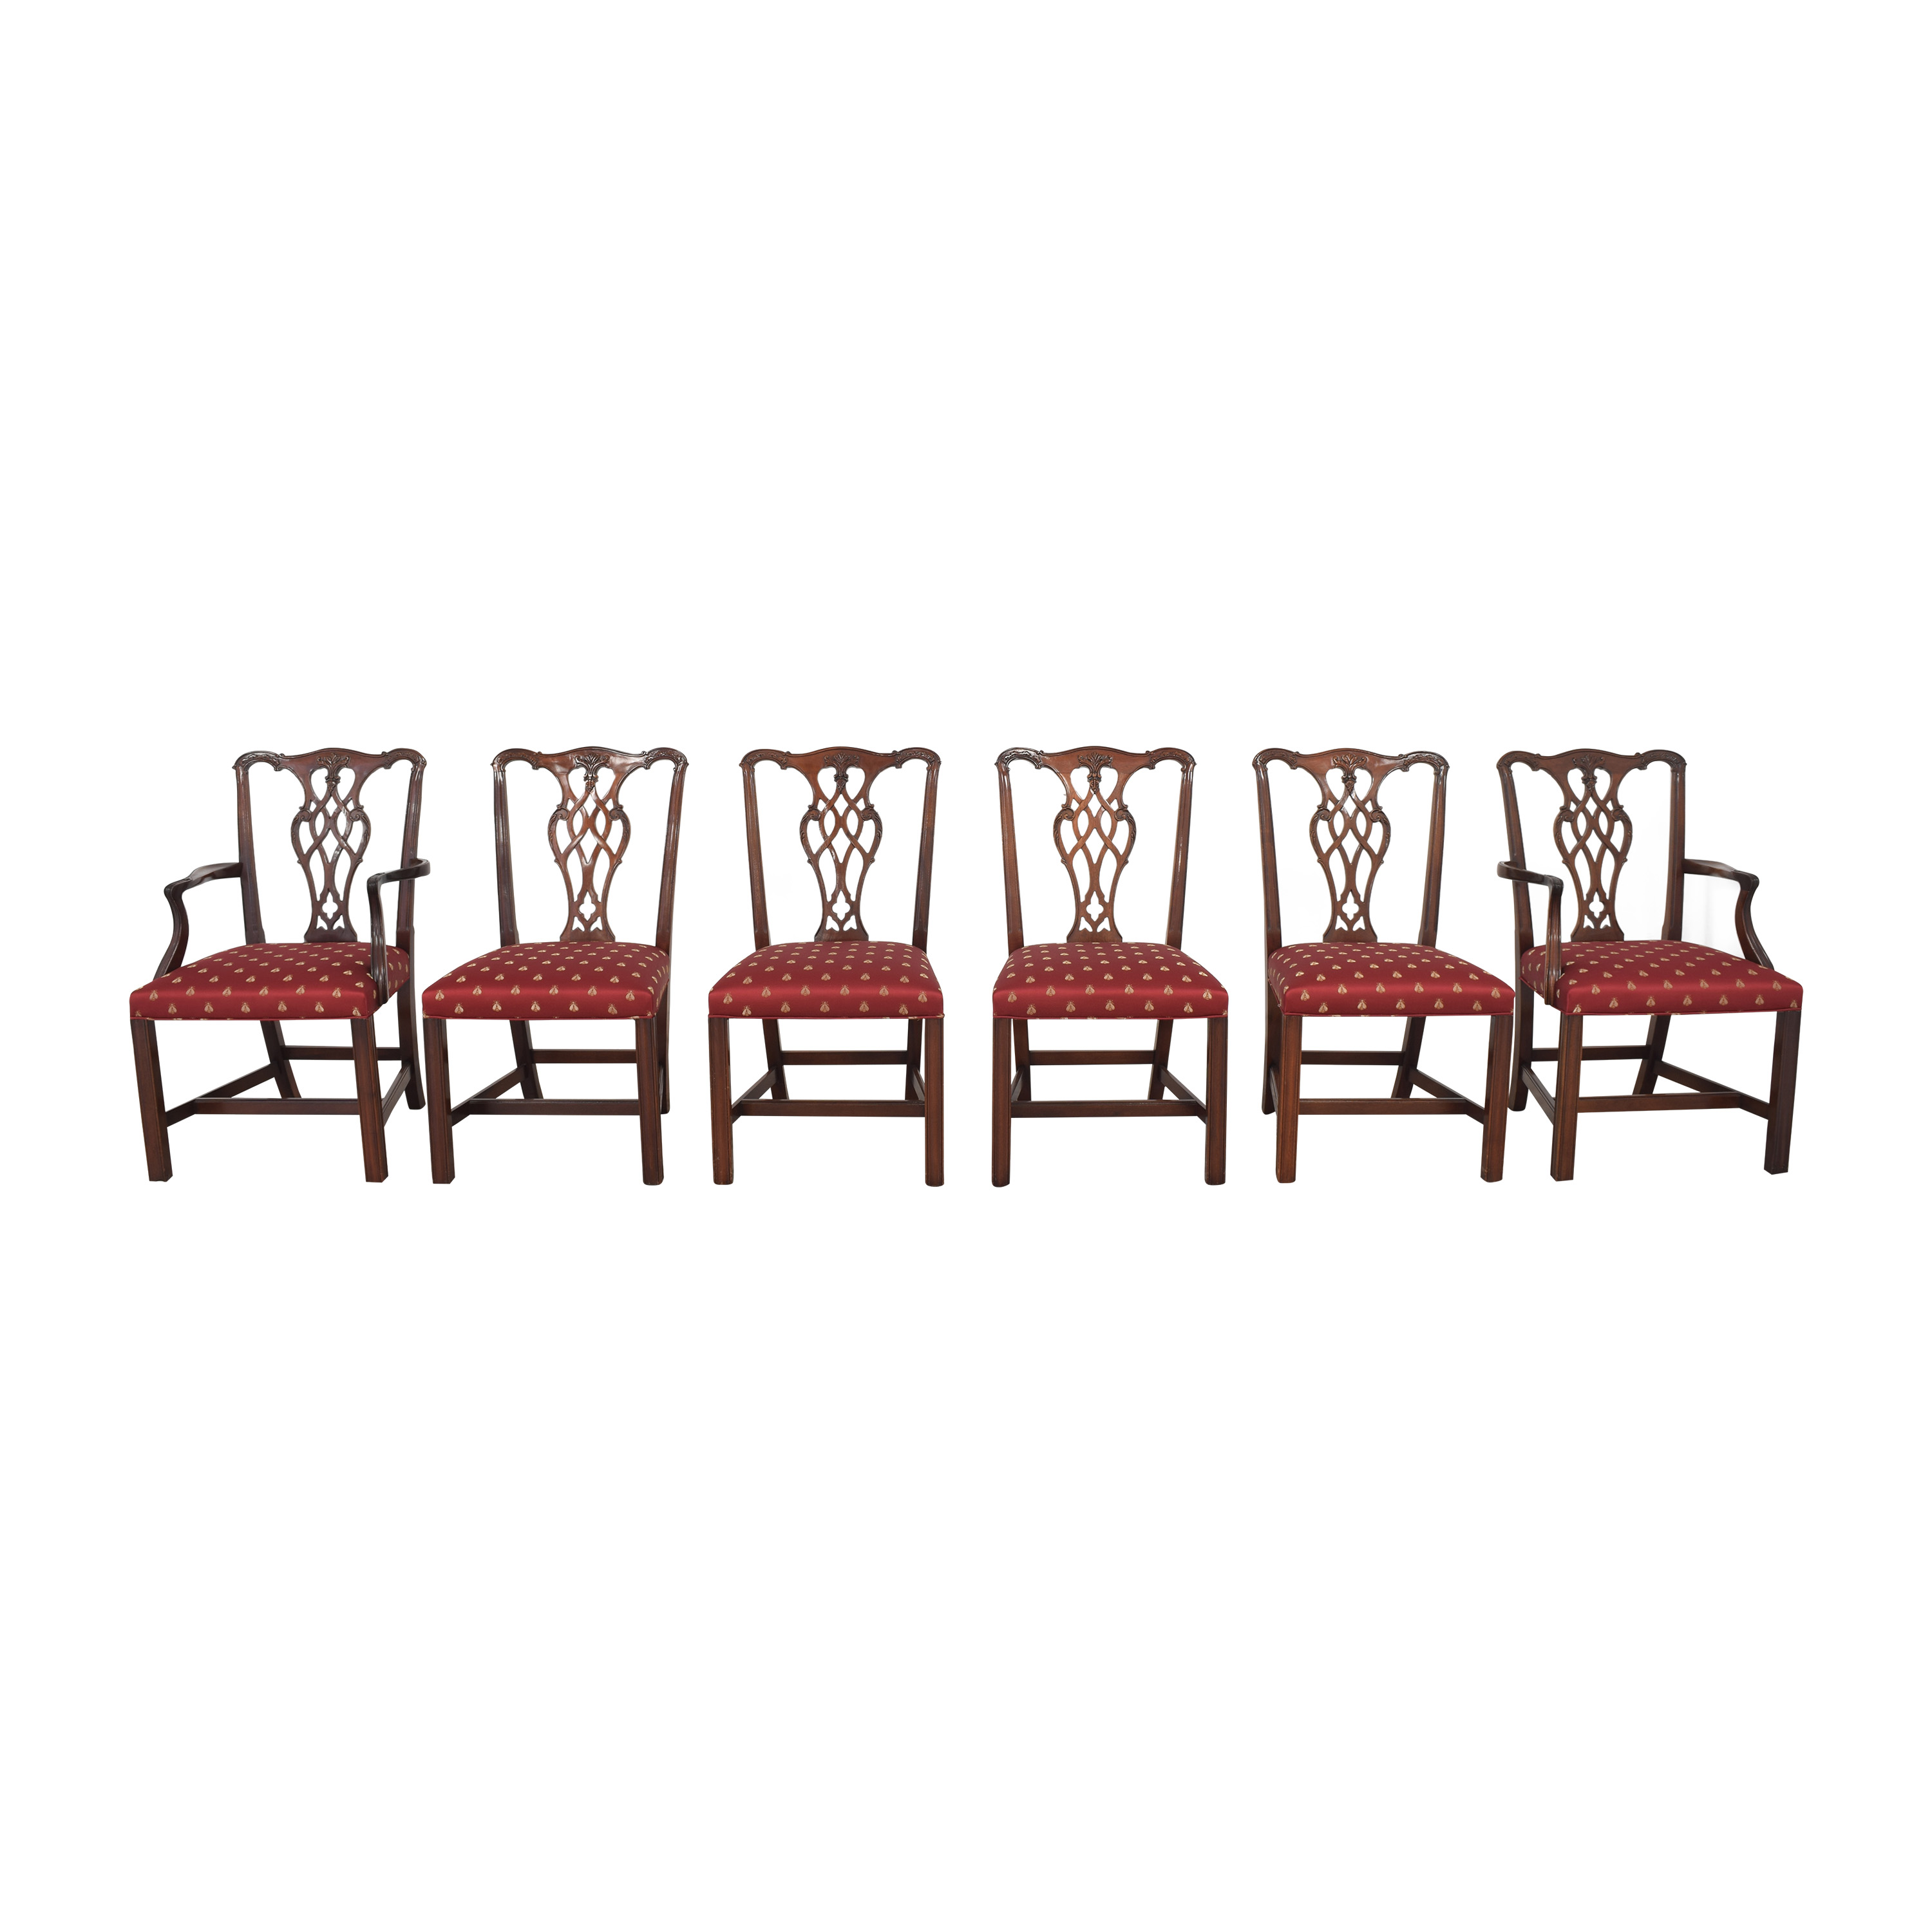 Councill Councill Chippendale Style Dining Chairs Dining Chairs